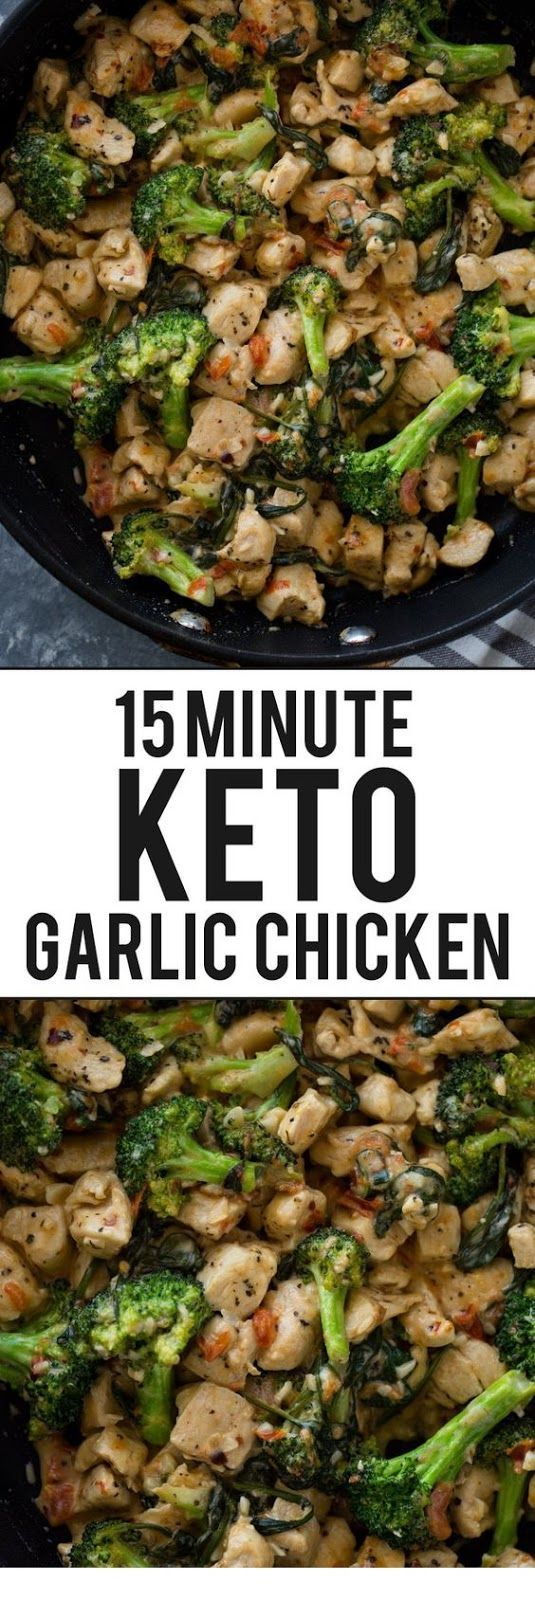 15 Minute Keto Garlic Chicken with Broccoli and Spinach #easydinnerrecipes